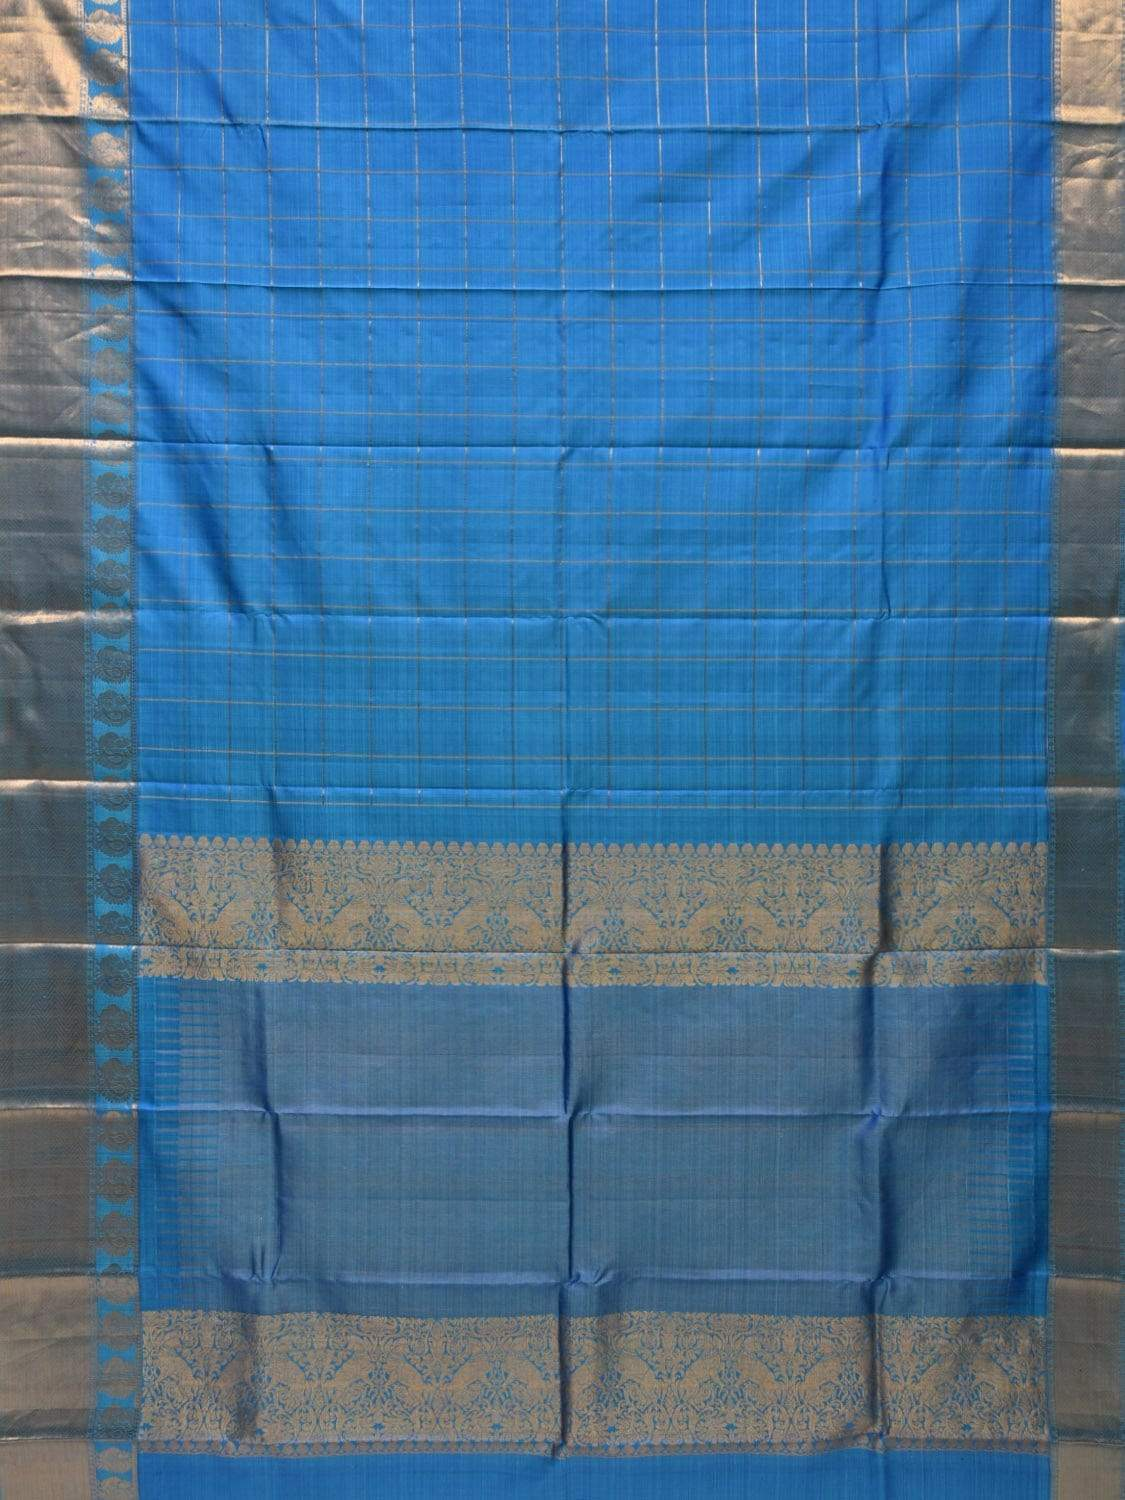 Blue Kanchipuram Silk Handloom Saree with Checks and Border Design k0493